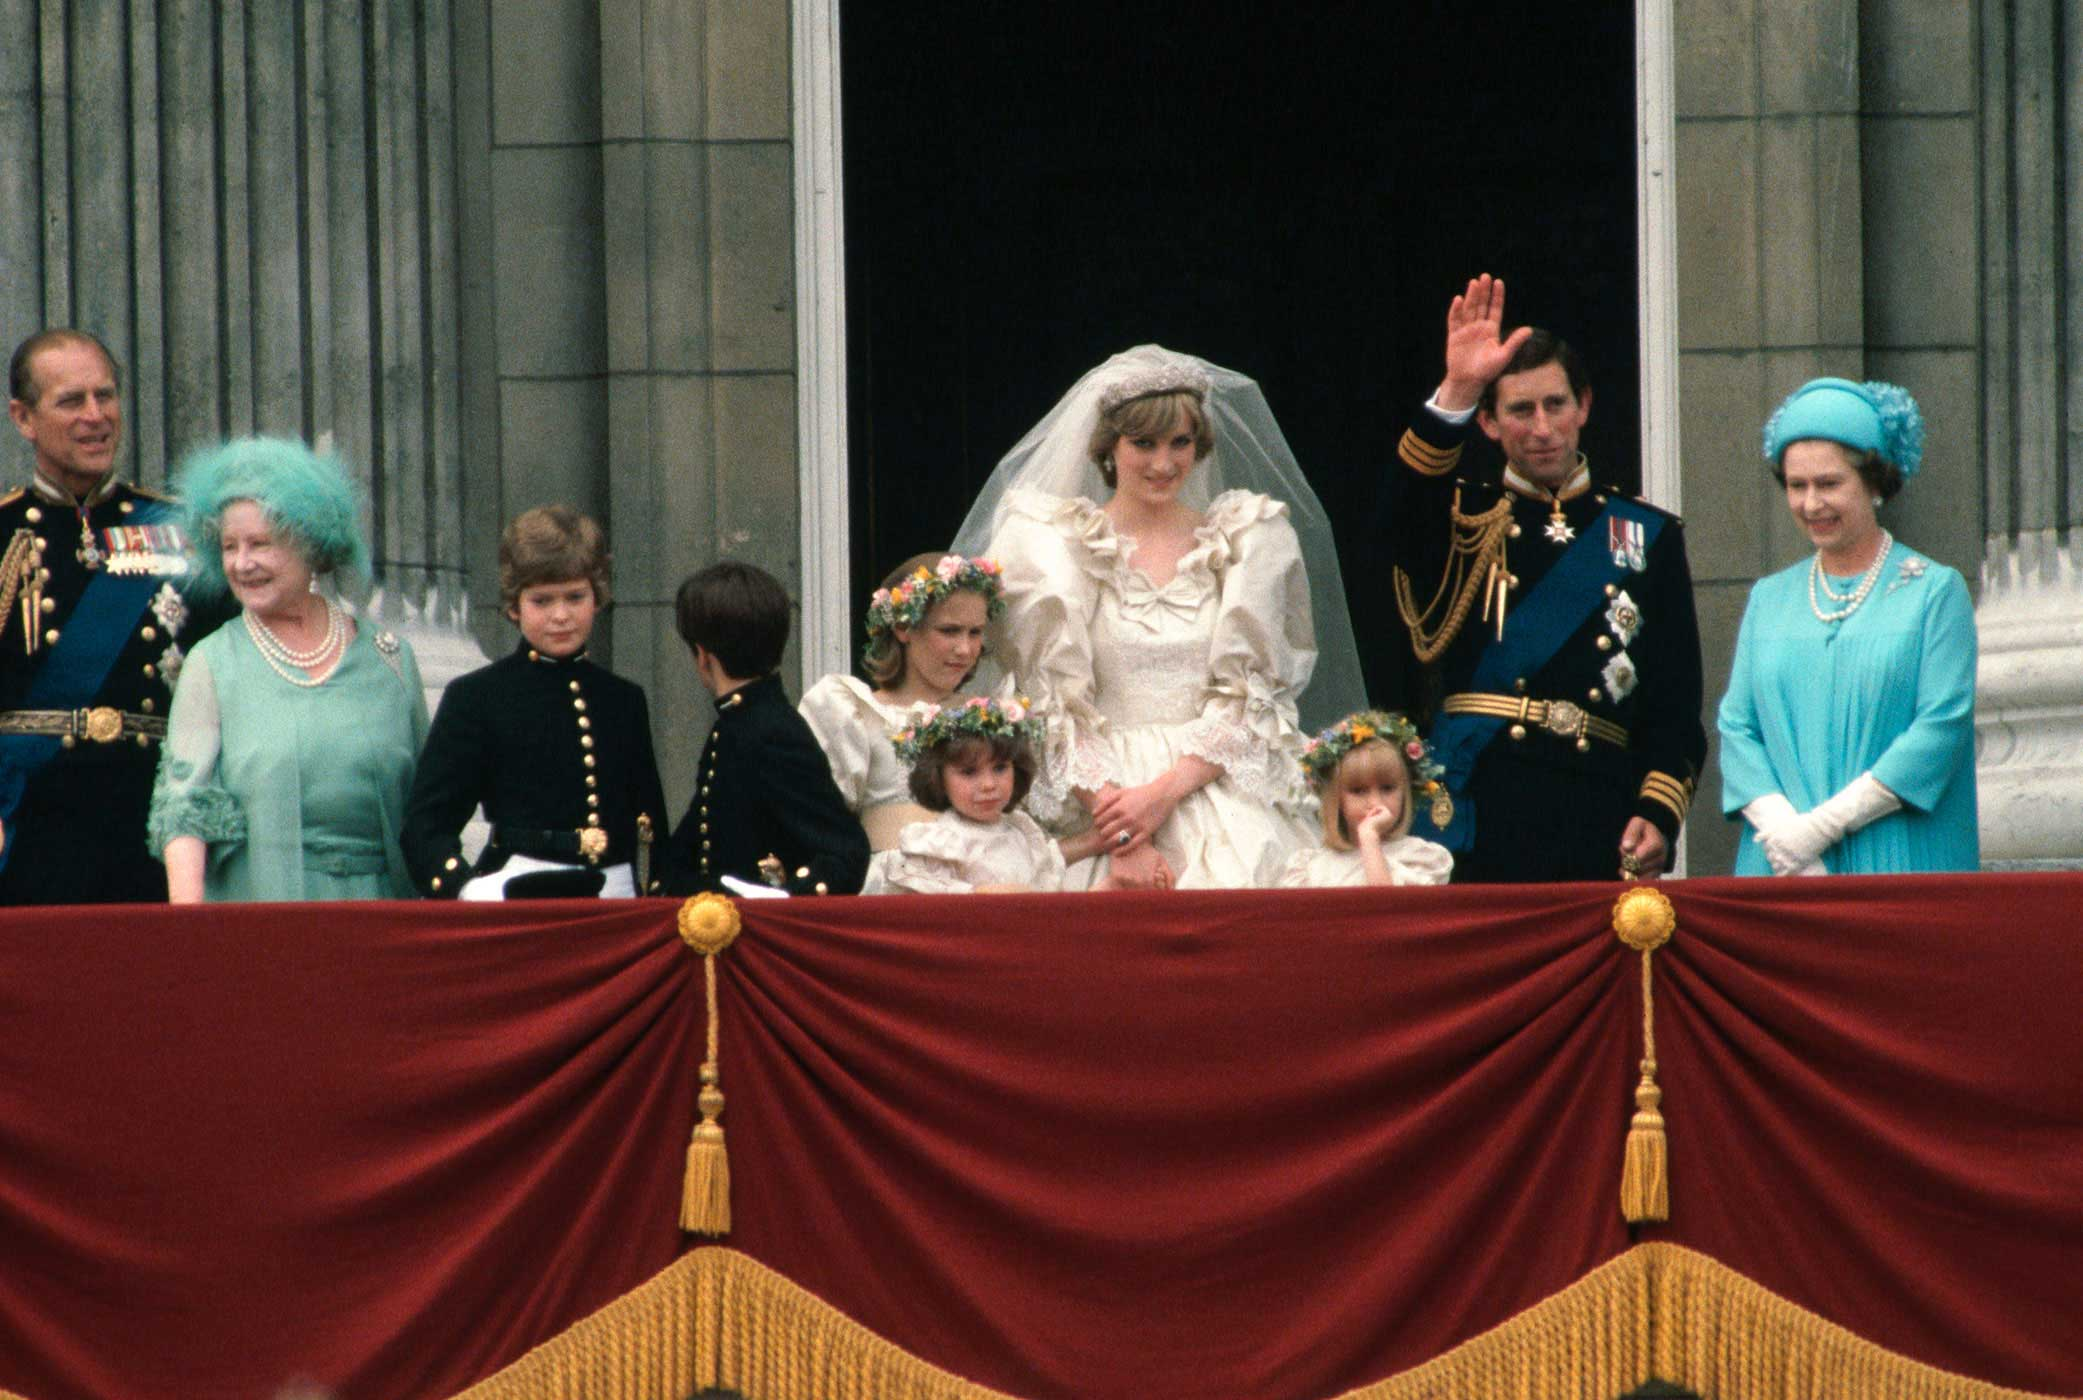 Prince Charles and Princess Diana greet the public on a Buckingham Palace balcony, along with members of the royal family, following their wedding on July 29, 1981. Their tumultuous marriage and messy divorce would be fodder for the British press for years to come.